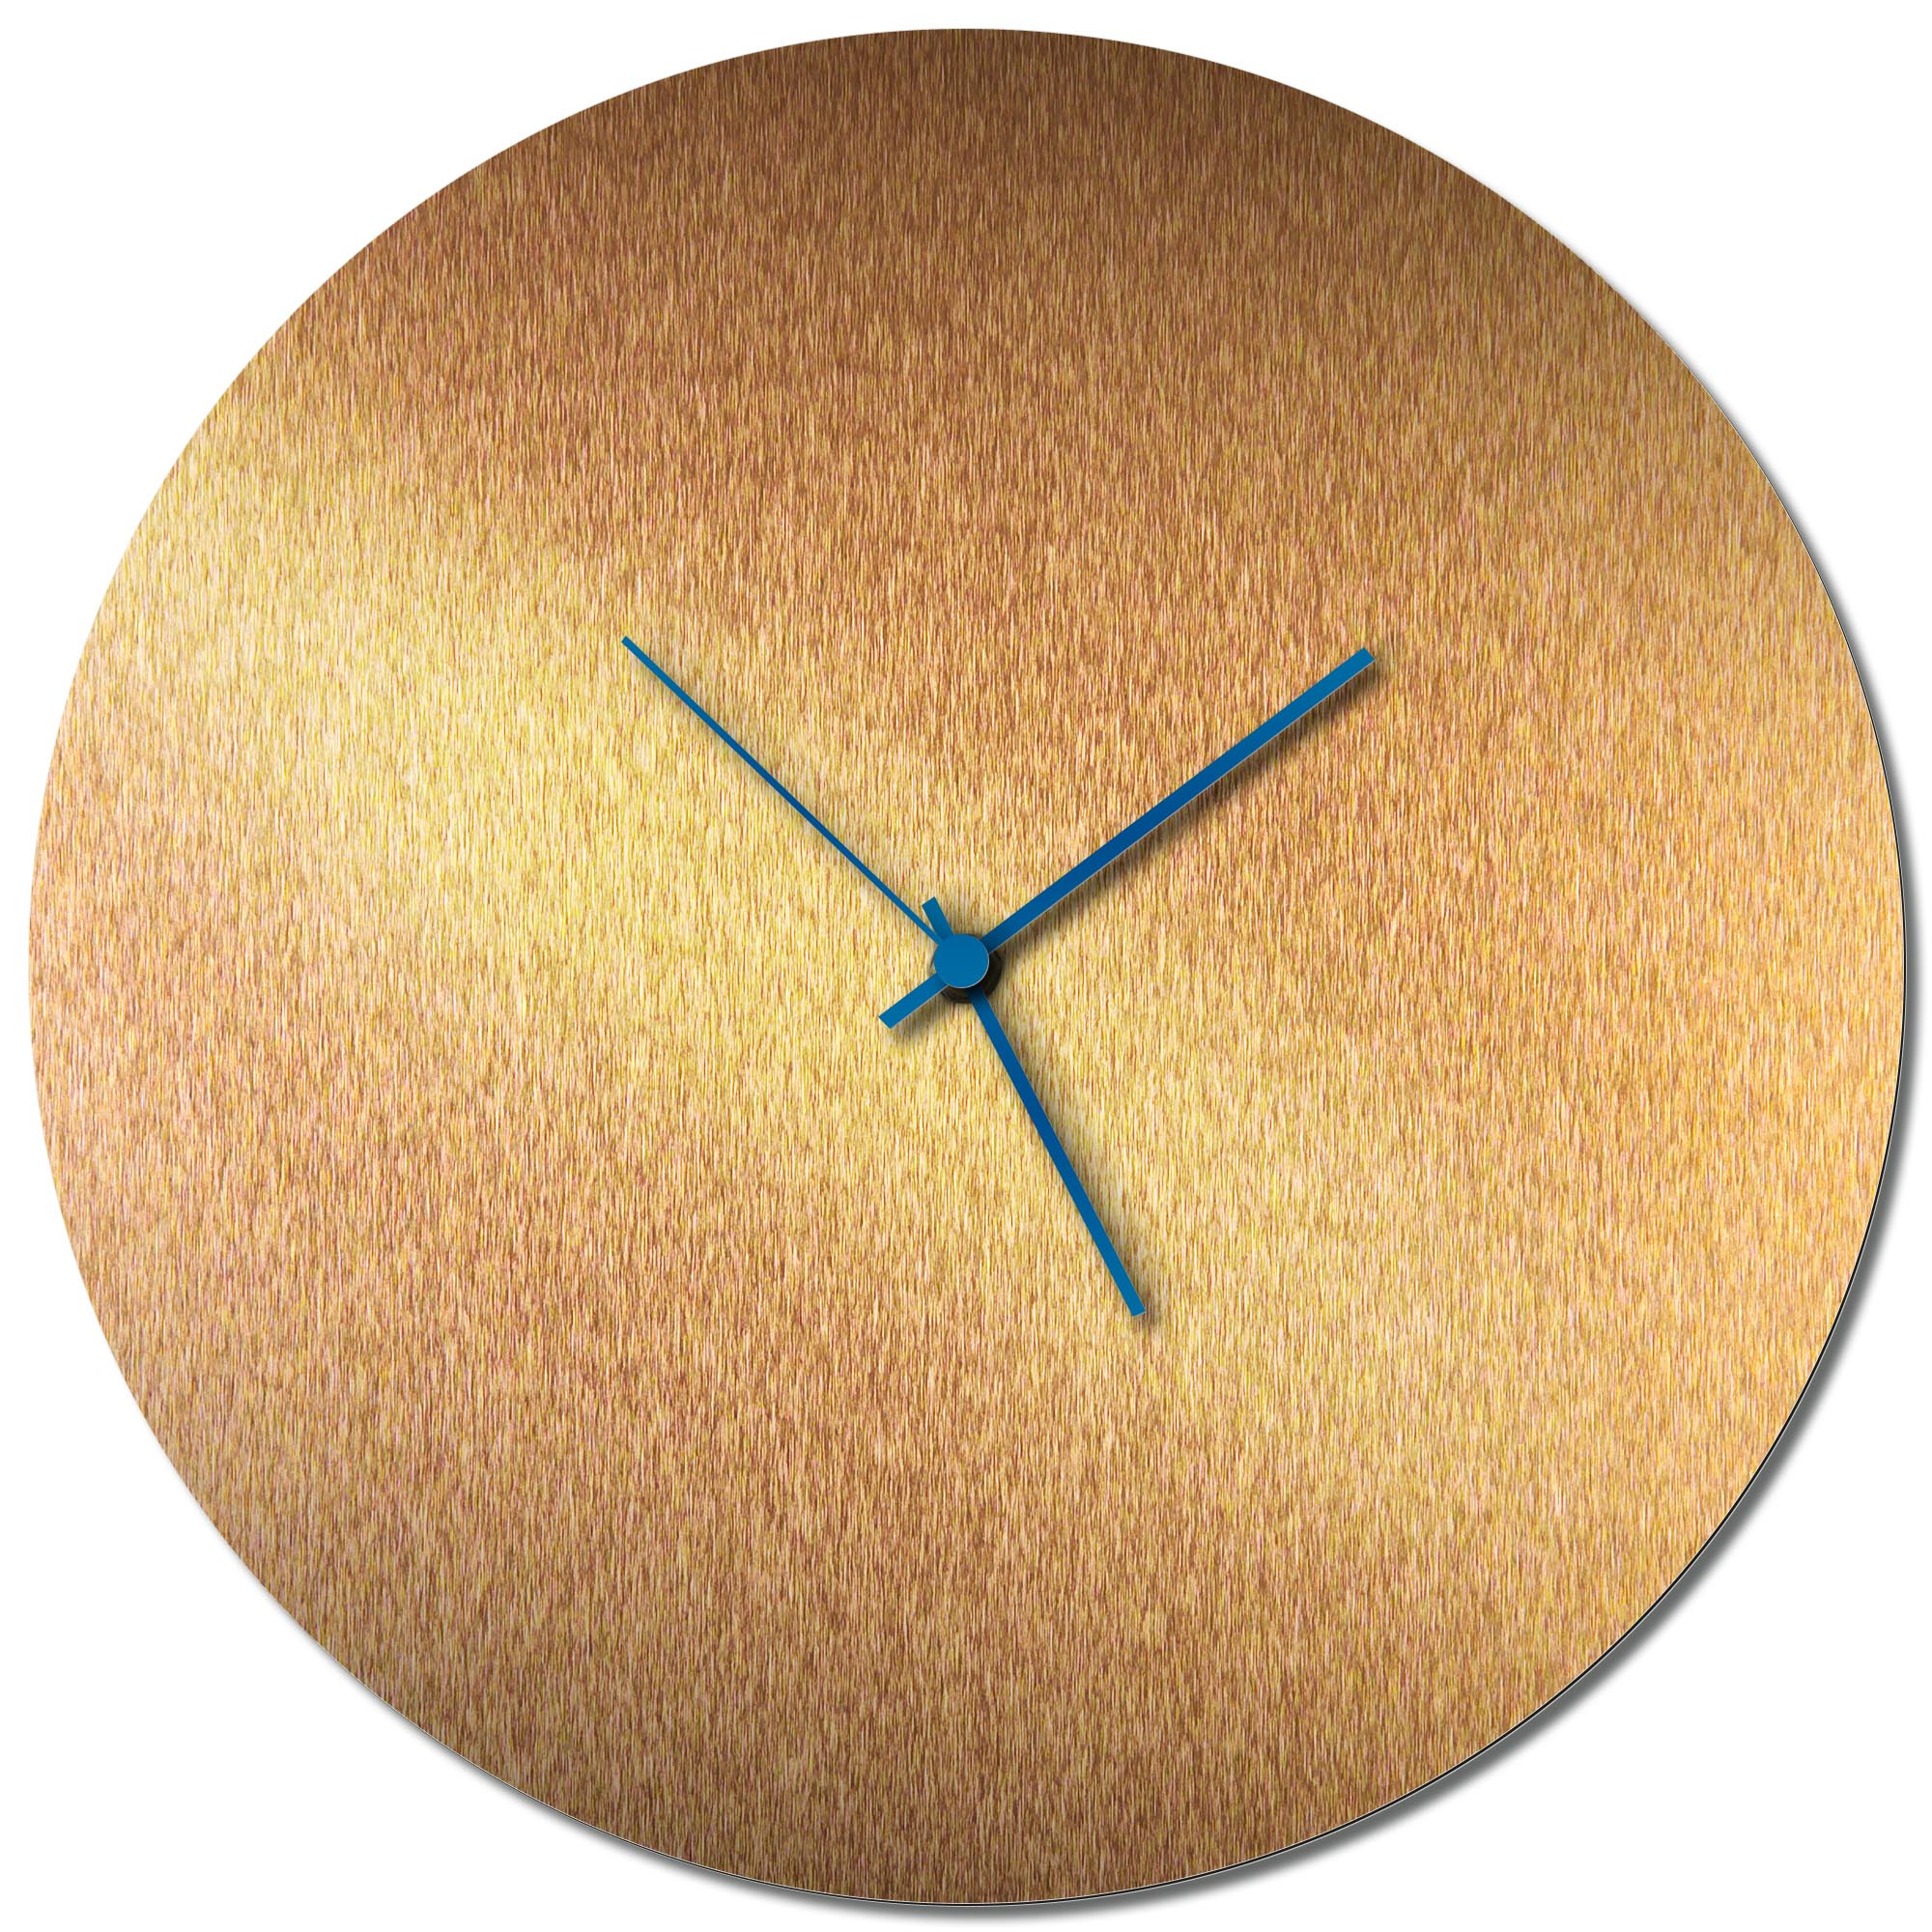 Adam Schwoeppe 'Bronzesmith Circle Clock Large Blue' Midcentury Modern Style Wall Clock